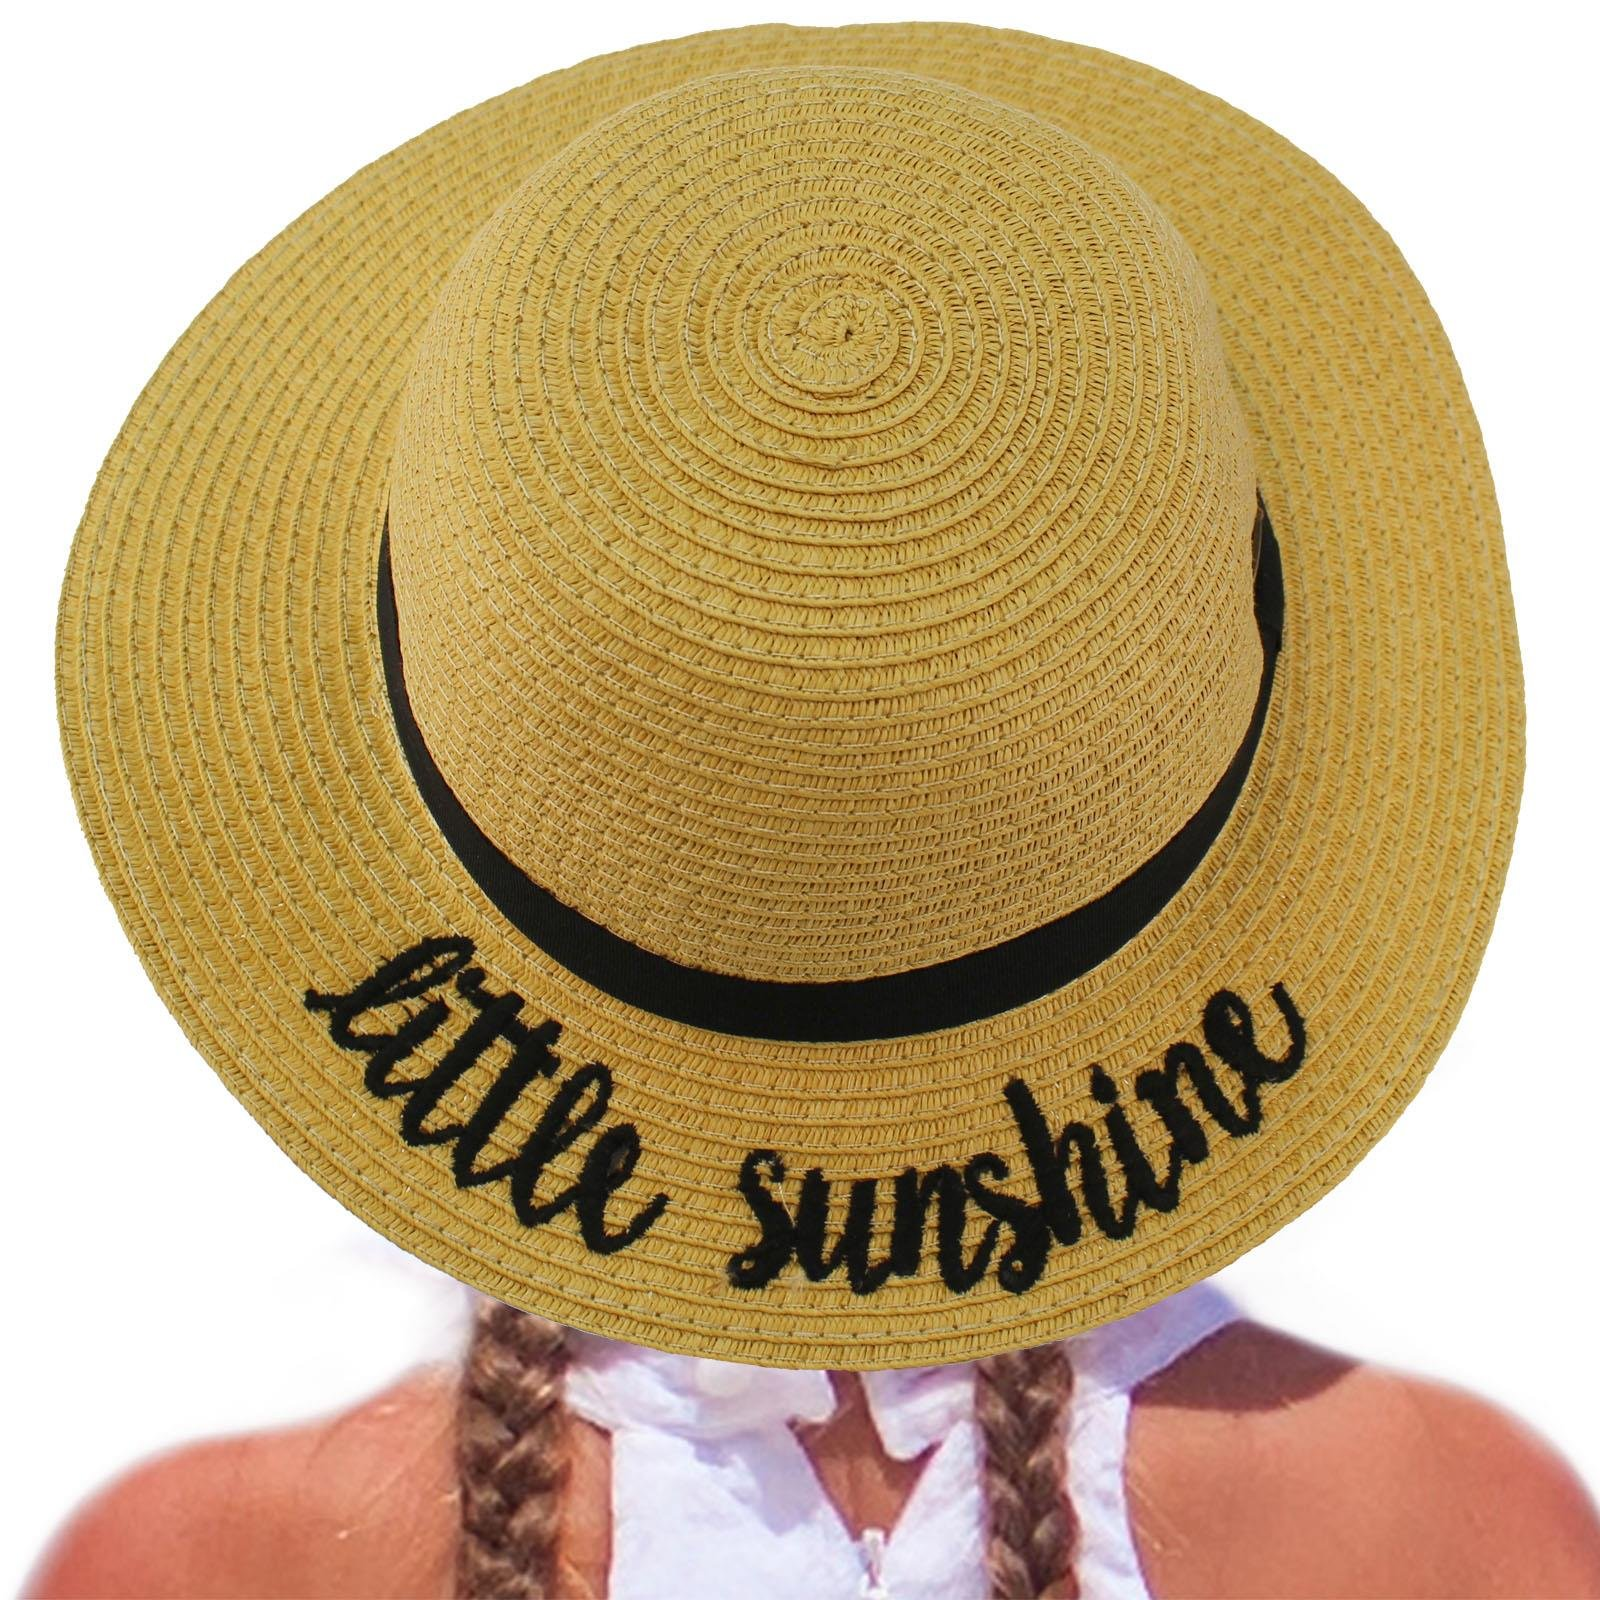 C.C Girls Kids Wording Sayings Summer Beach Pool Floppy Dress Sun Adjustable Hat Natural (Little Sunshine)